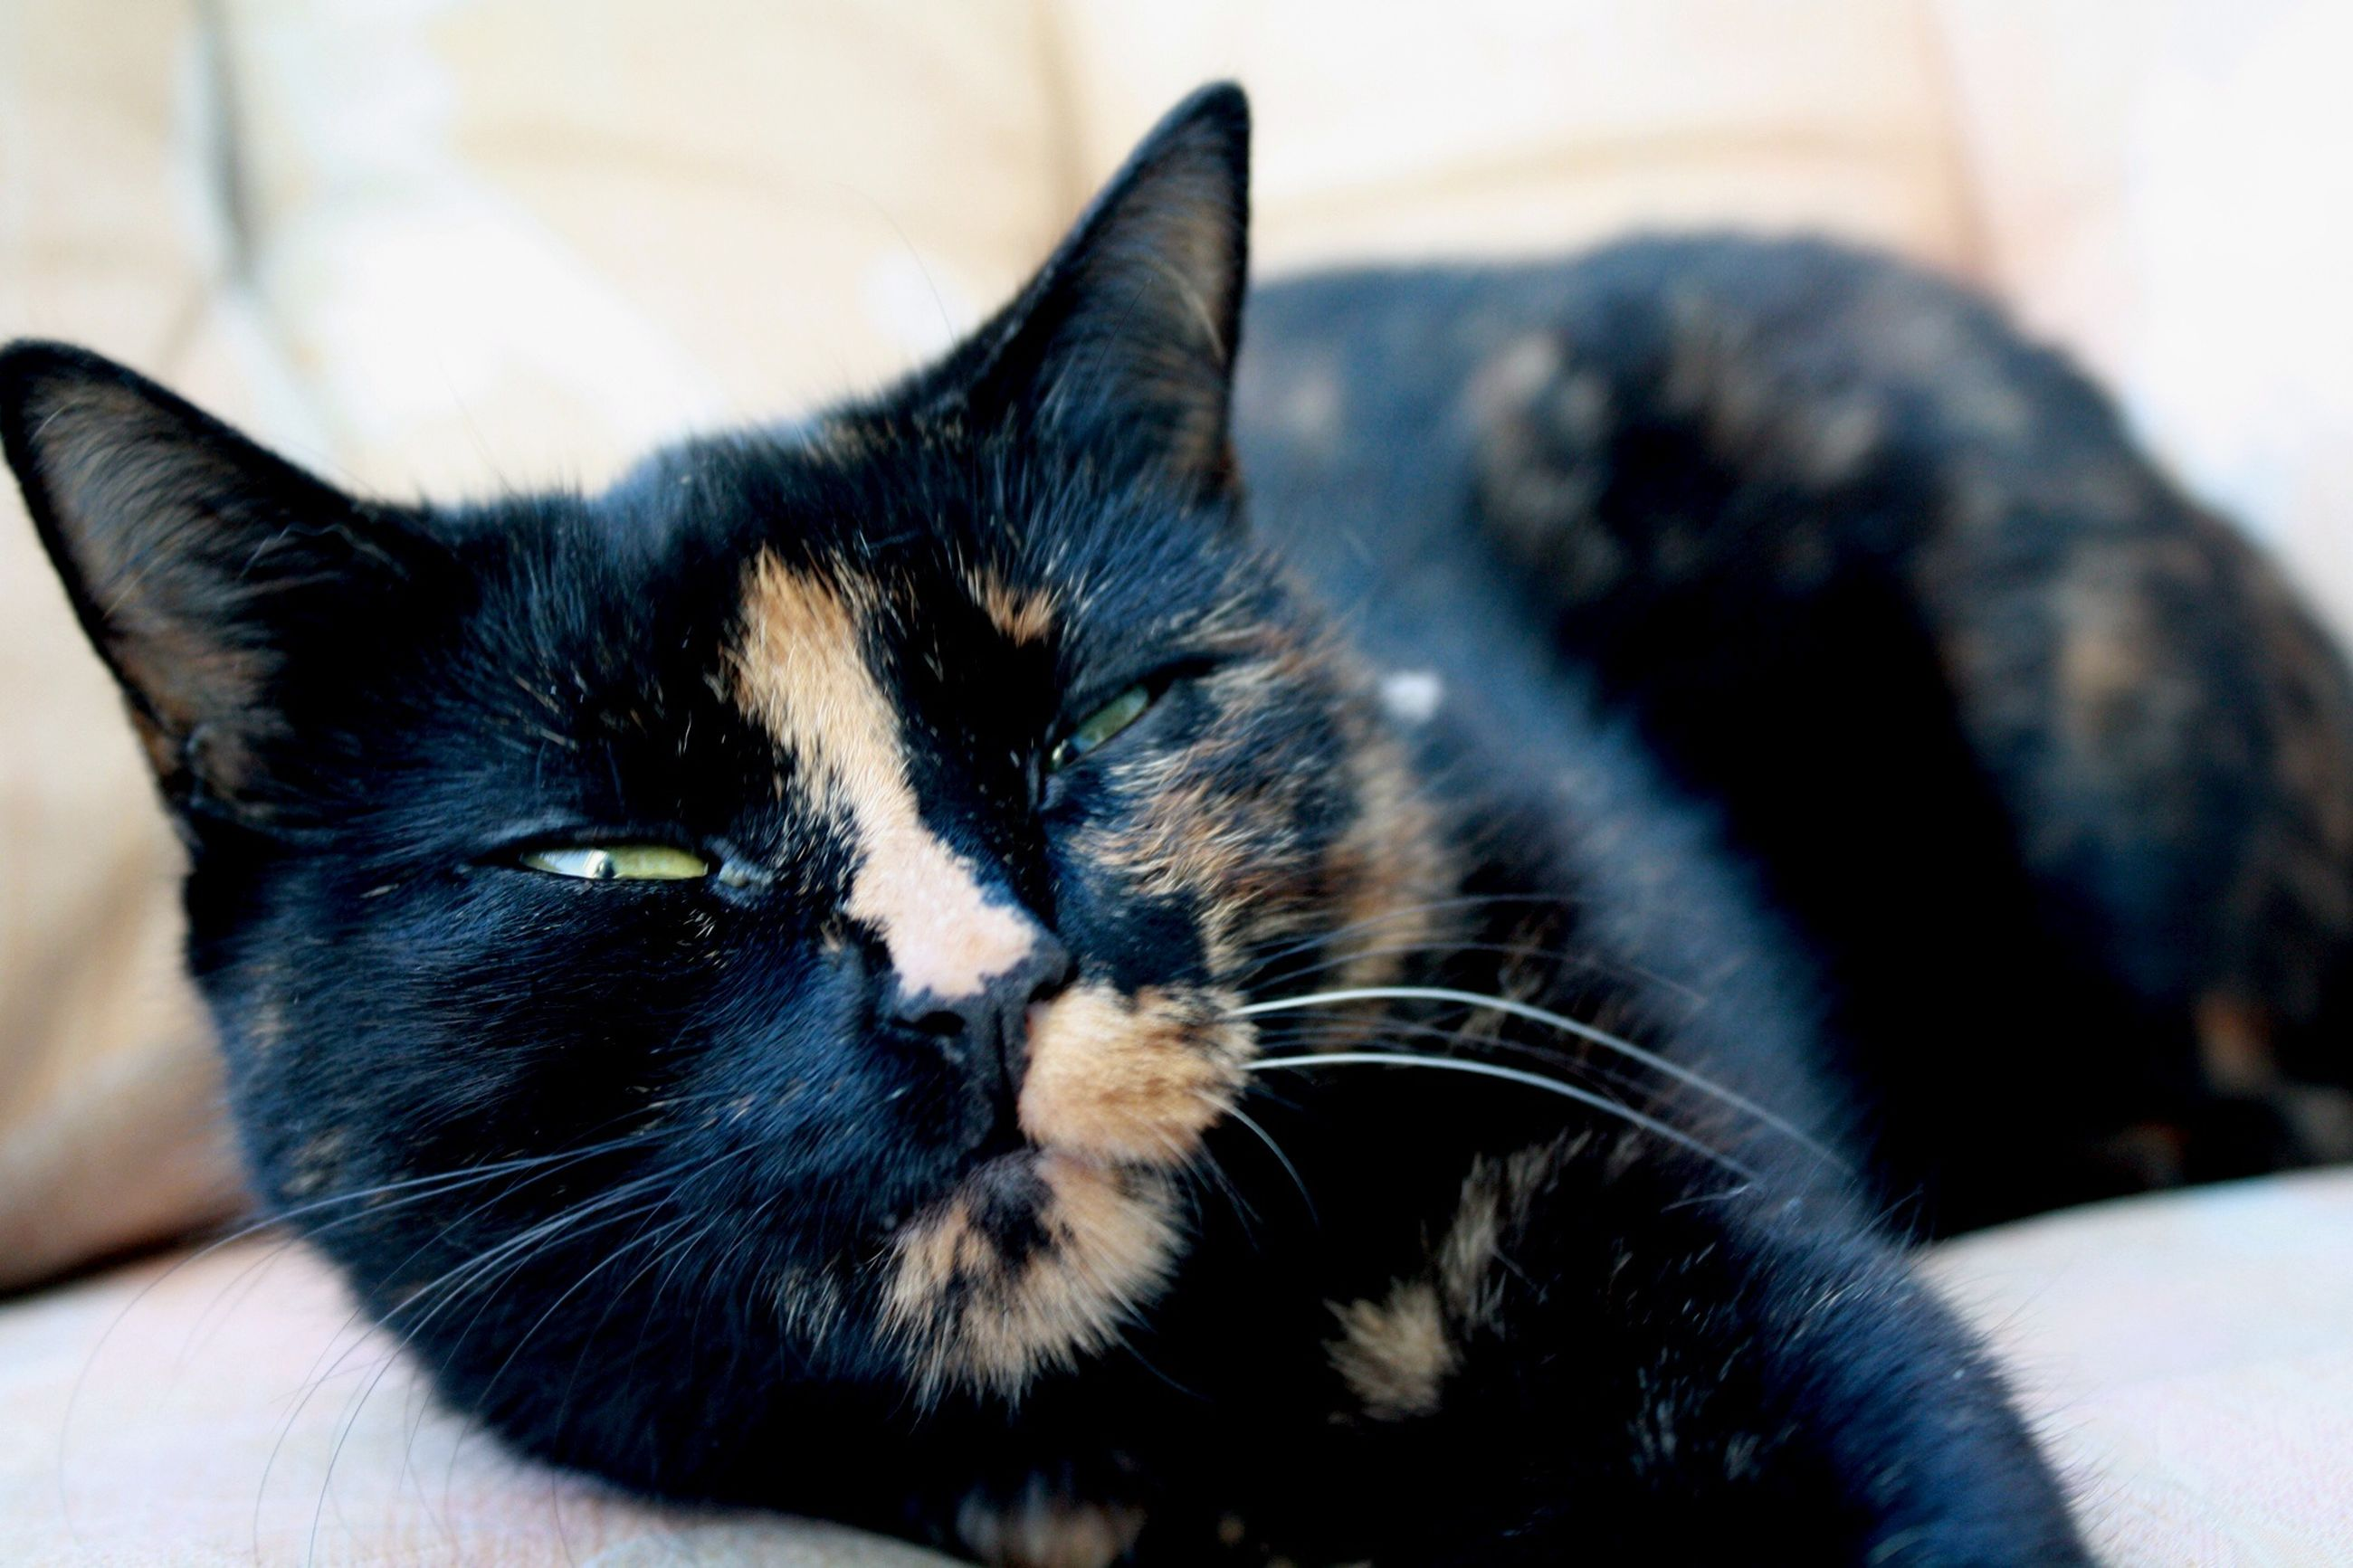 pets, domestic cat, domestic animals, cat, indoors, one animal, animal themes, mammal, feline, whisker, close-up, relaxation, home interior, portrait, looking at camera, focus on foreground, bed, home, lying down, resting